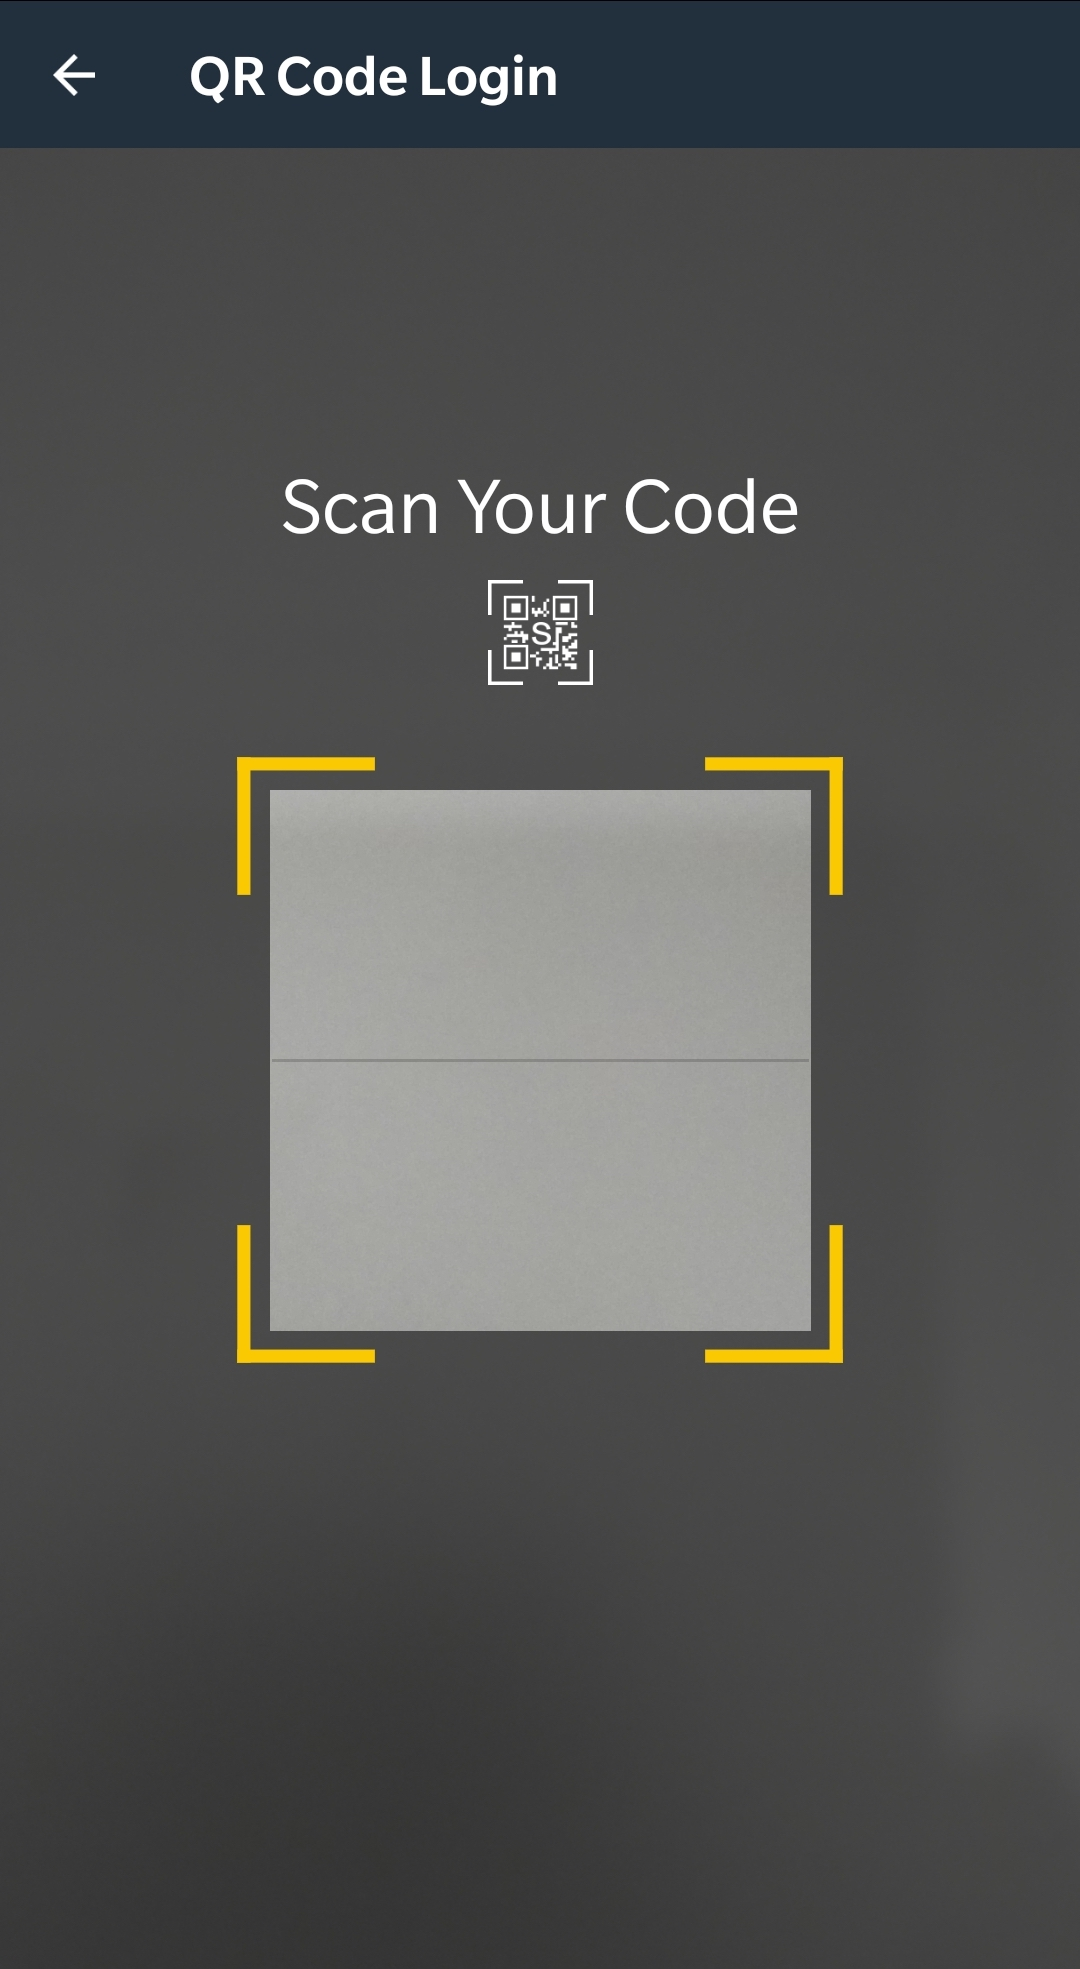 08a_AND_OnePlus5T_QR.jpg